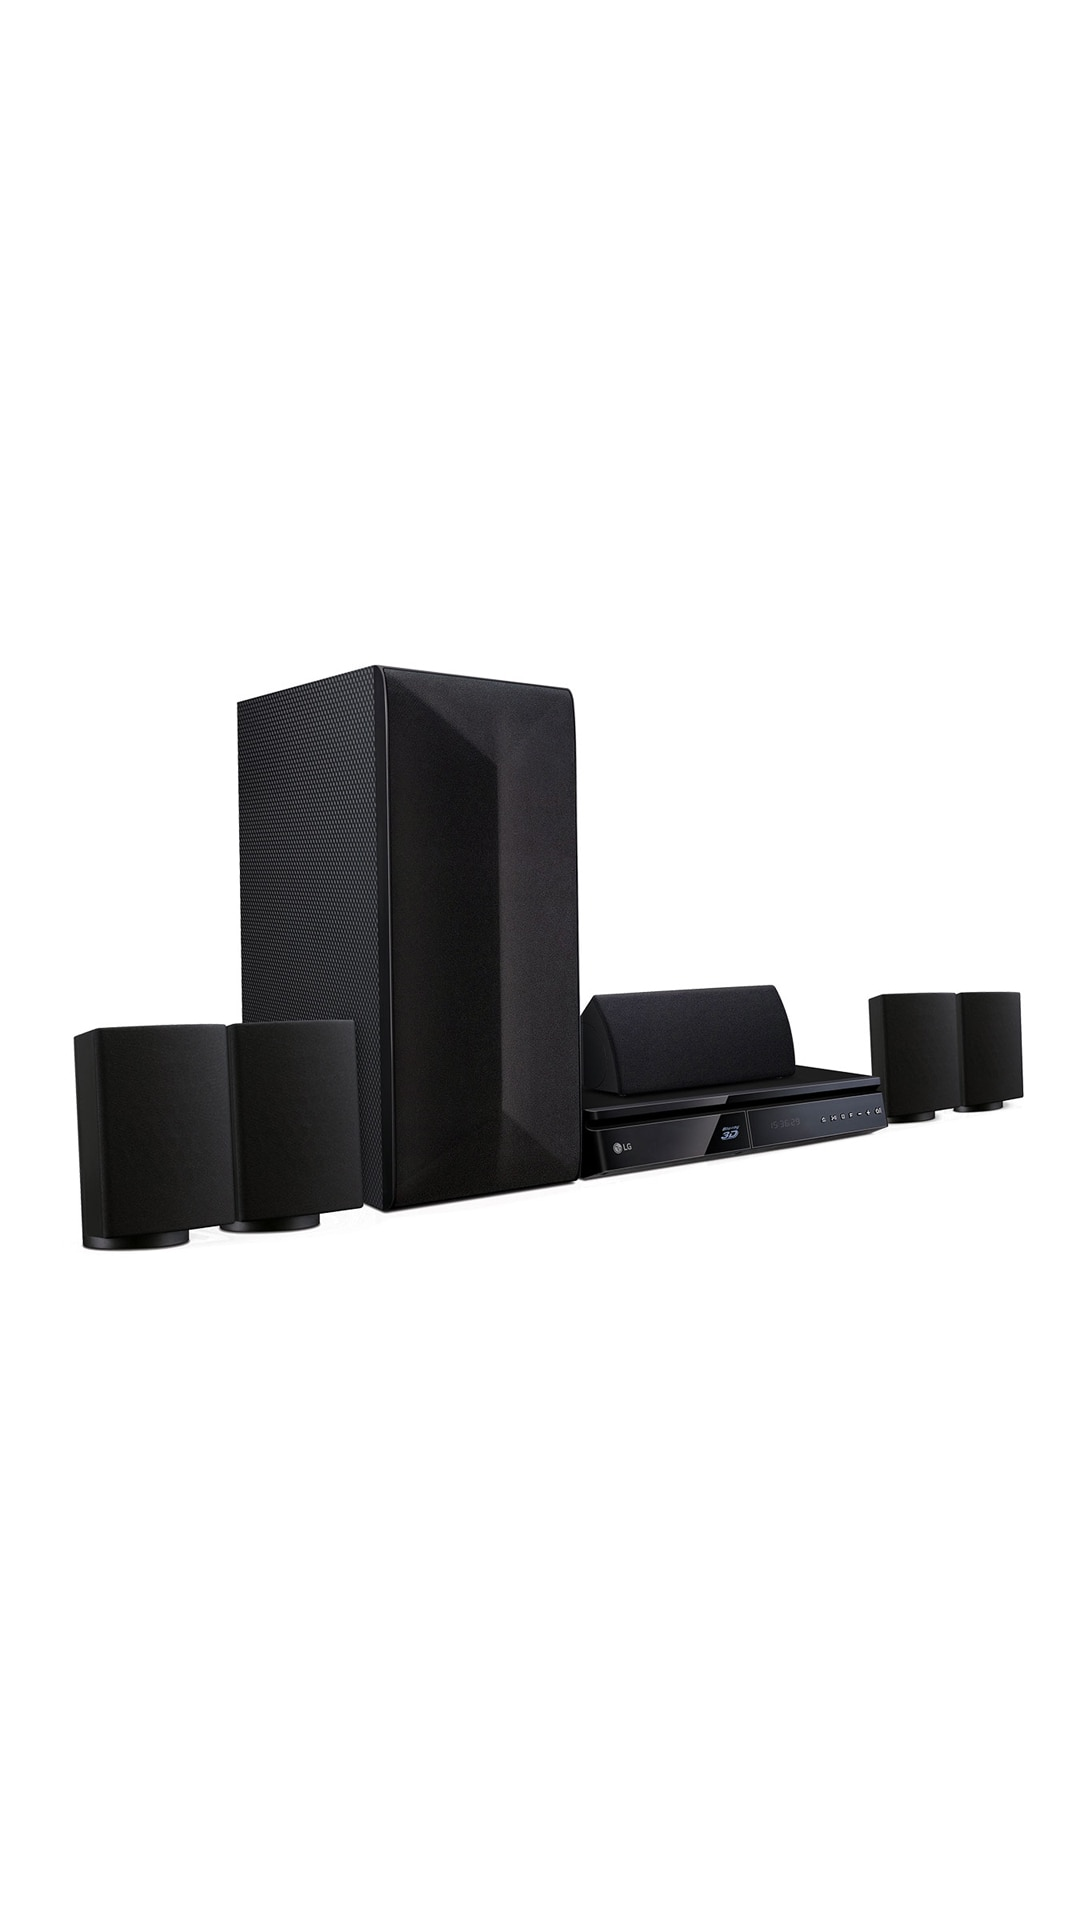 LG LHB625 Blu Ray Player 5.1 Channel Home Theatre System